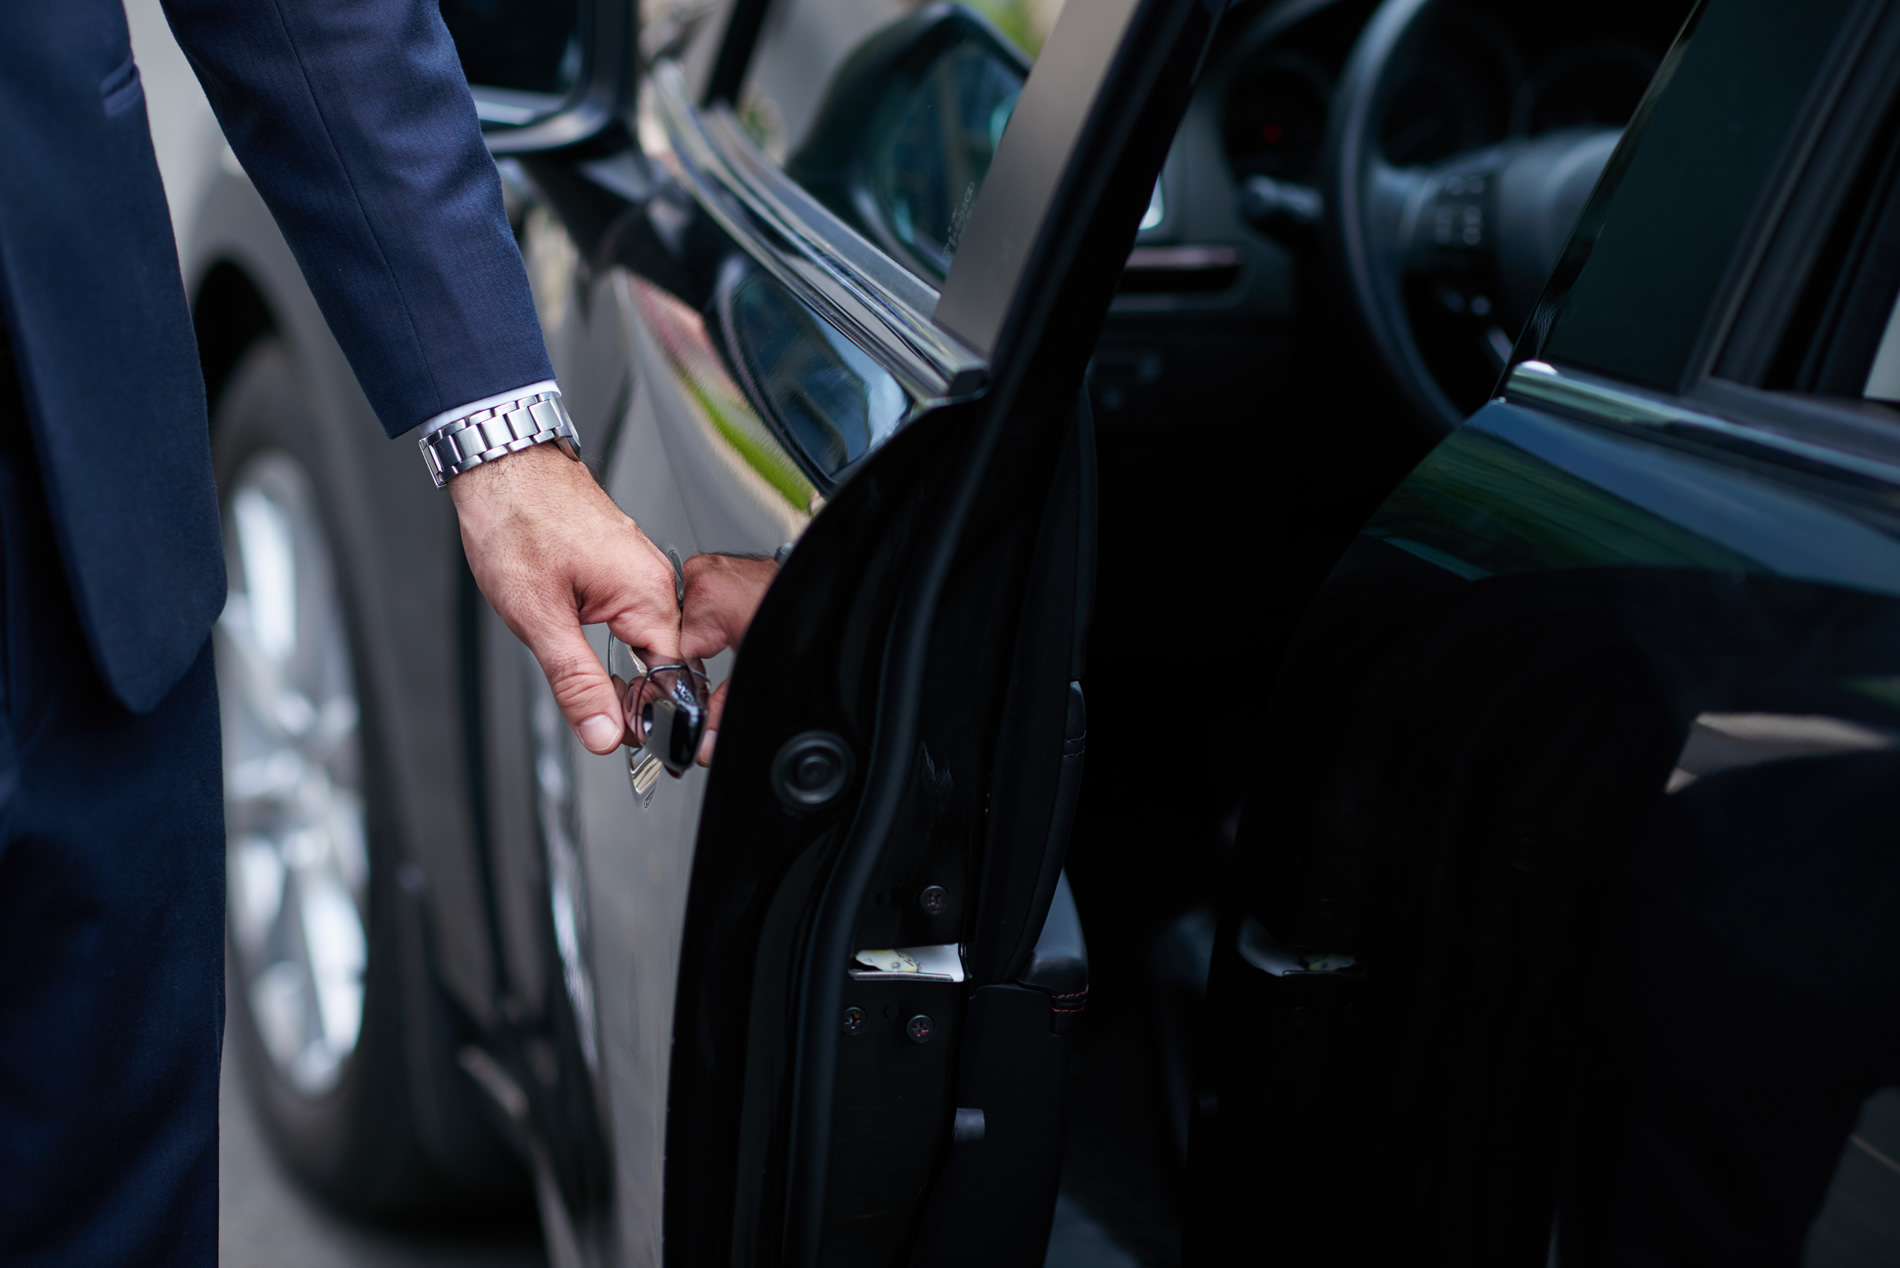 Chauffeur Services from Maple Executive Cars